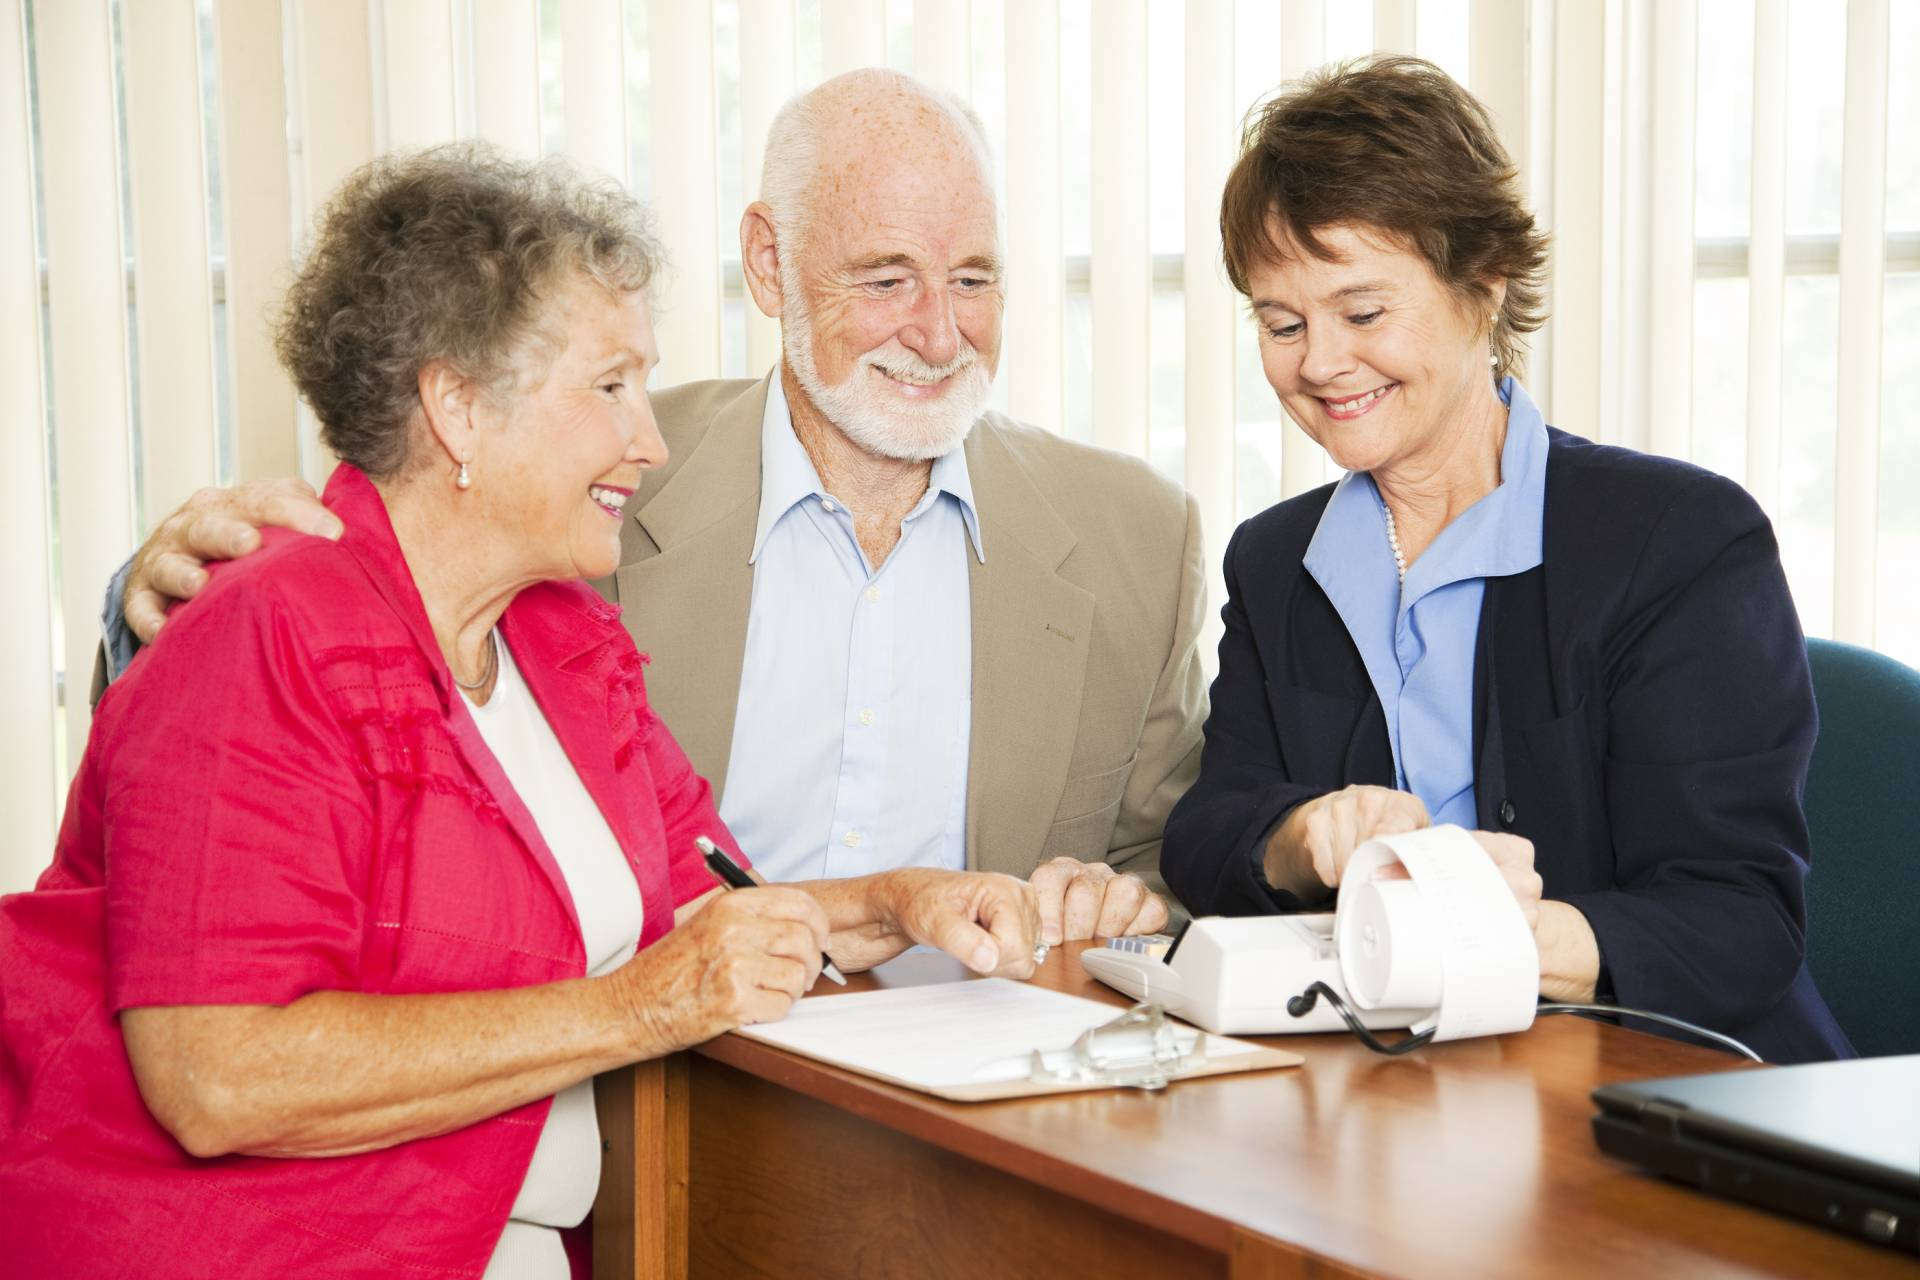 WILL A LIFE INSURANCE POLICY BE SUBJECT TO PROBATE? (HERE'S WHAT YOU NEED TO KNOW)